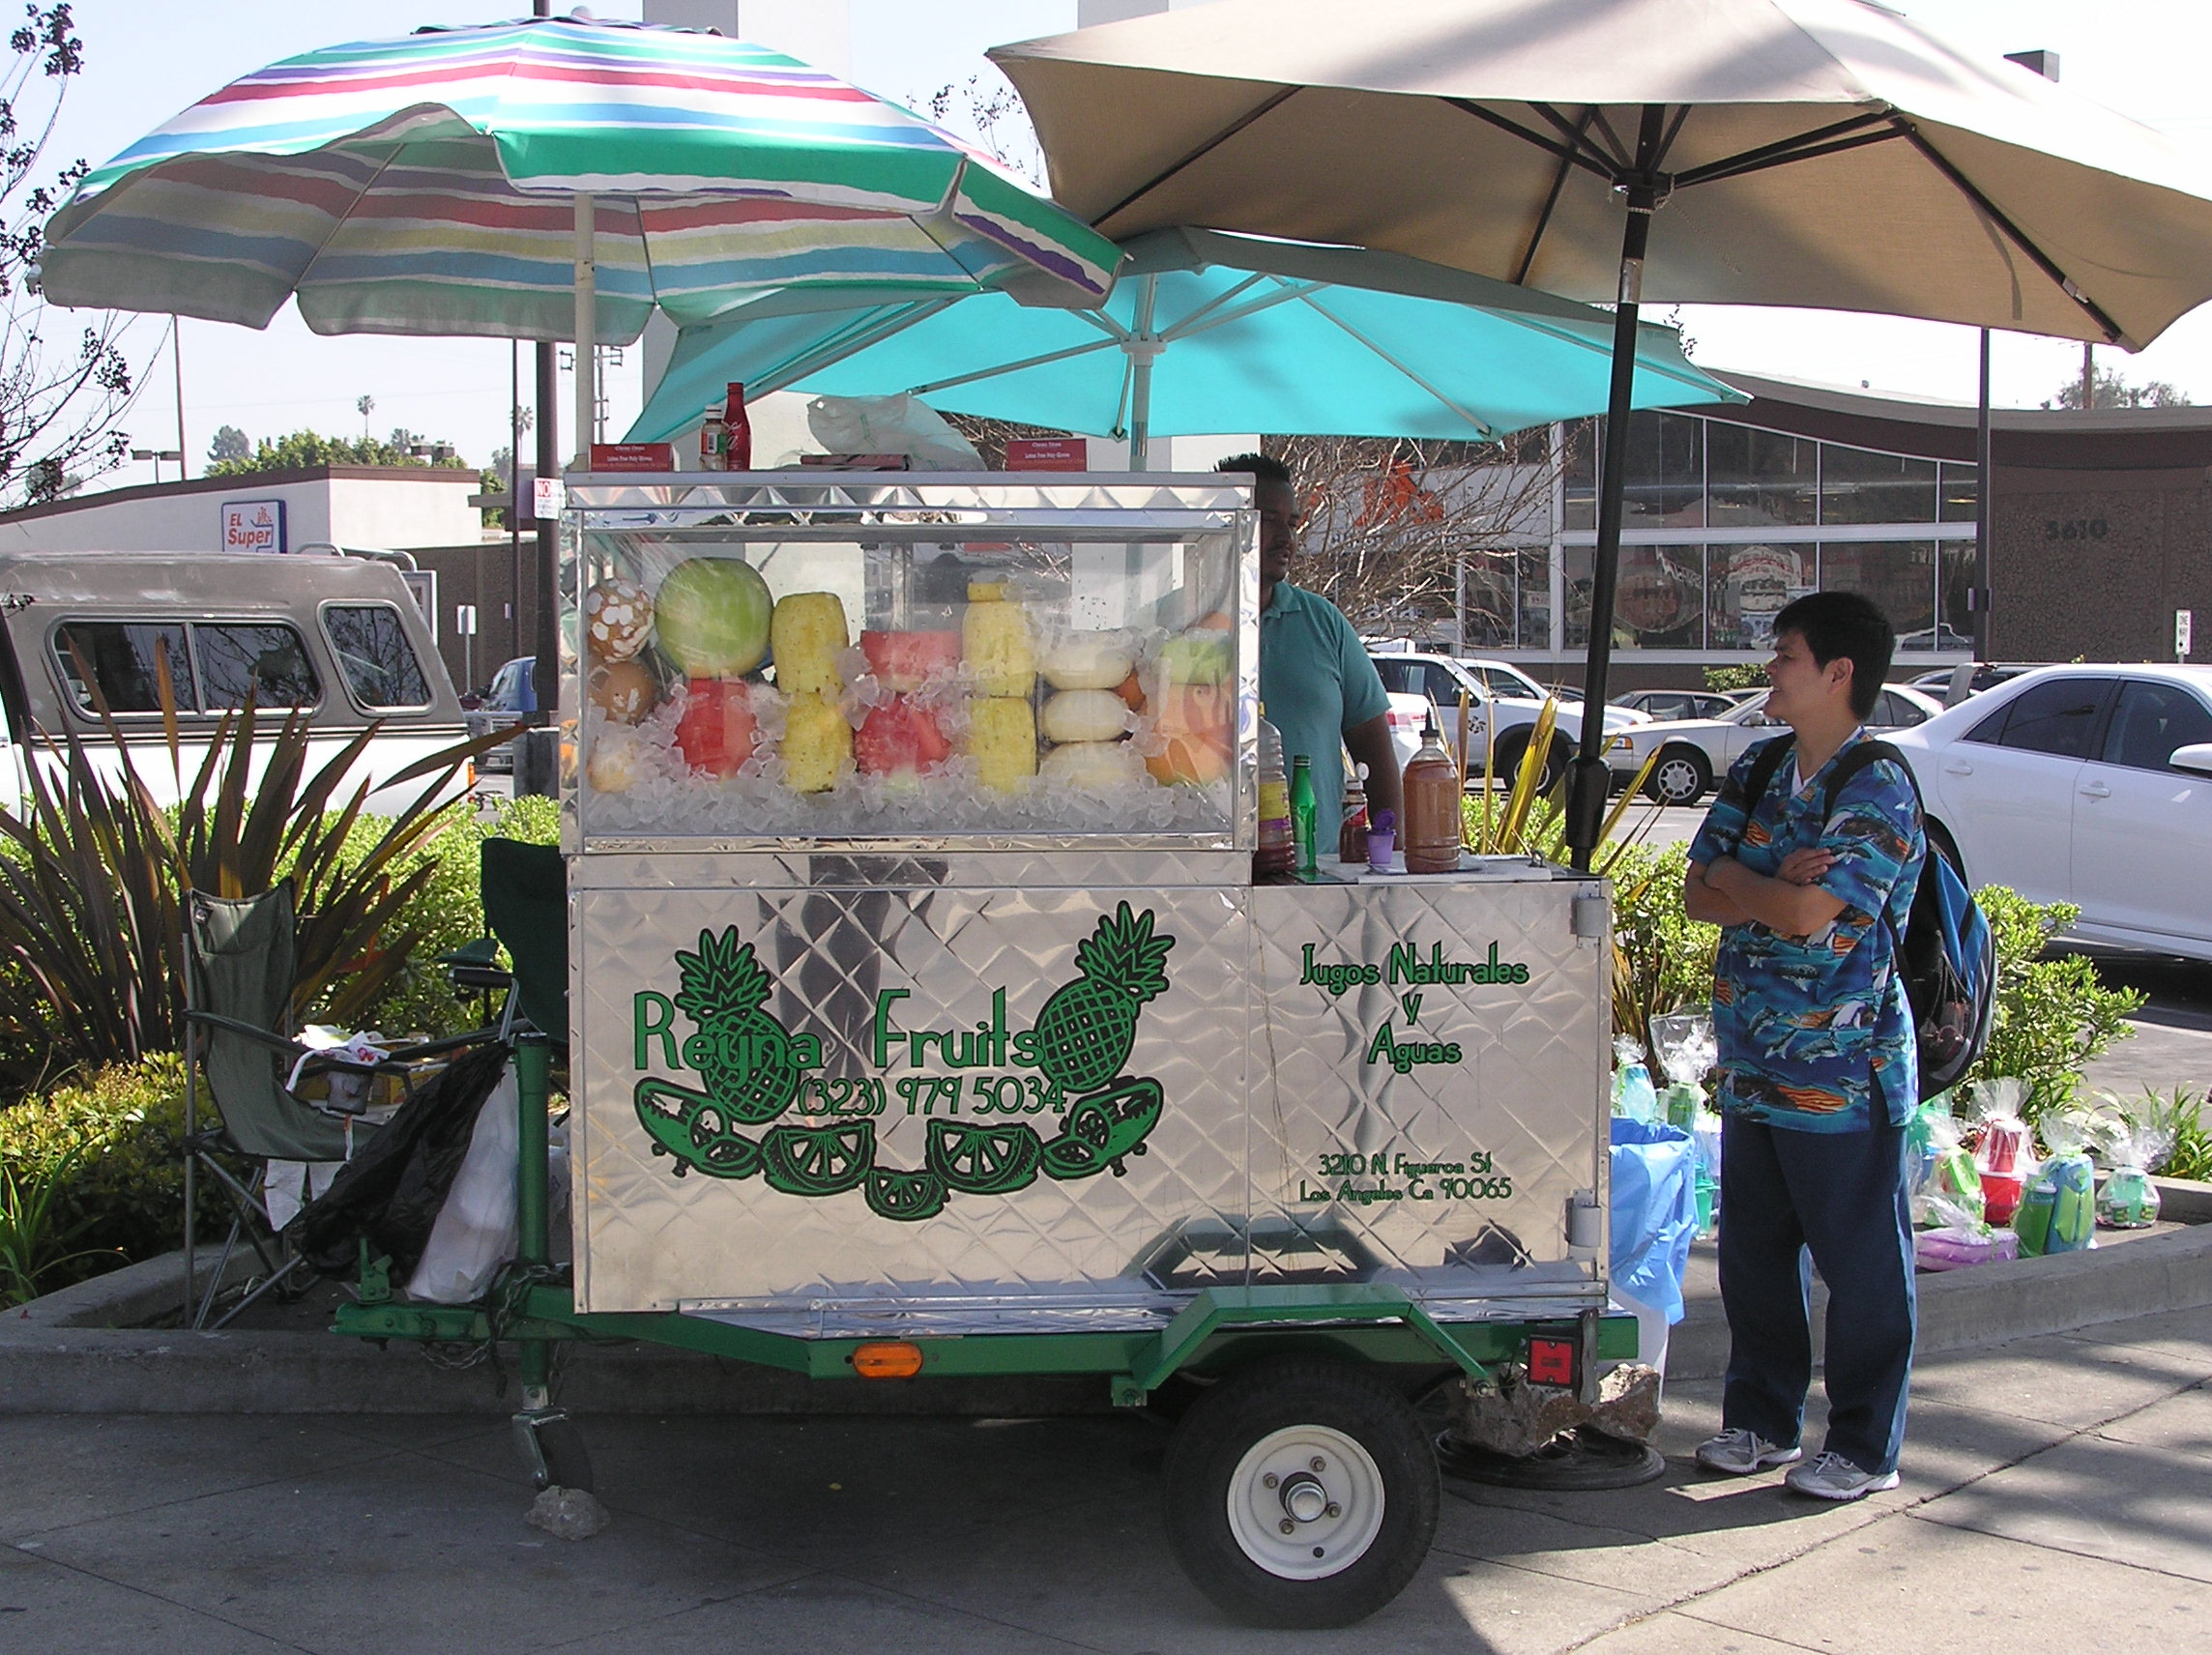 Fruit_vendor_in_Highland_Park.JPG